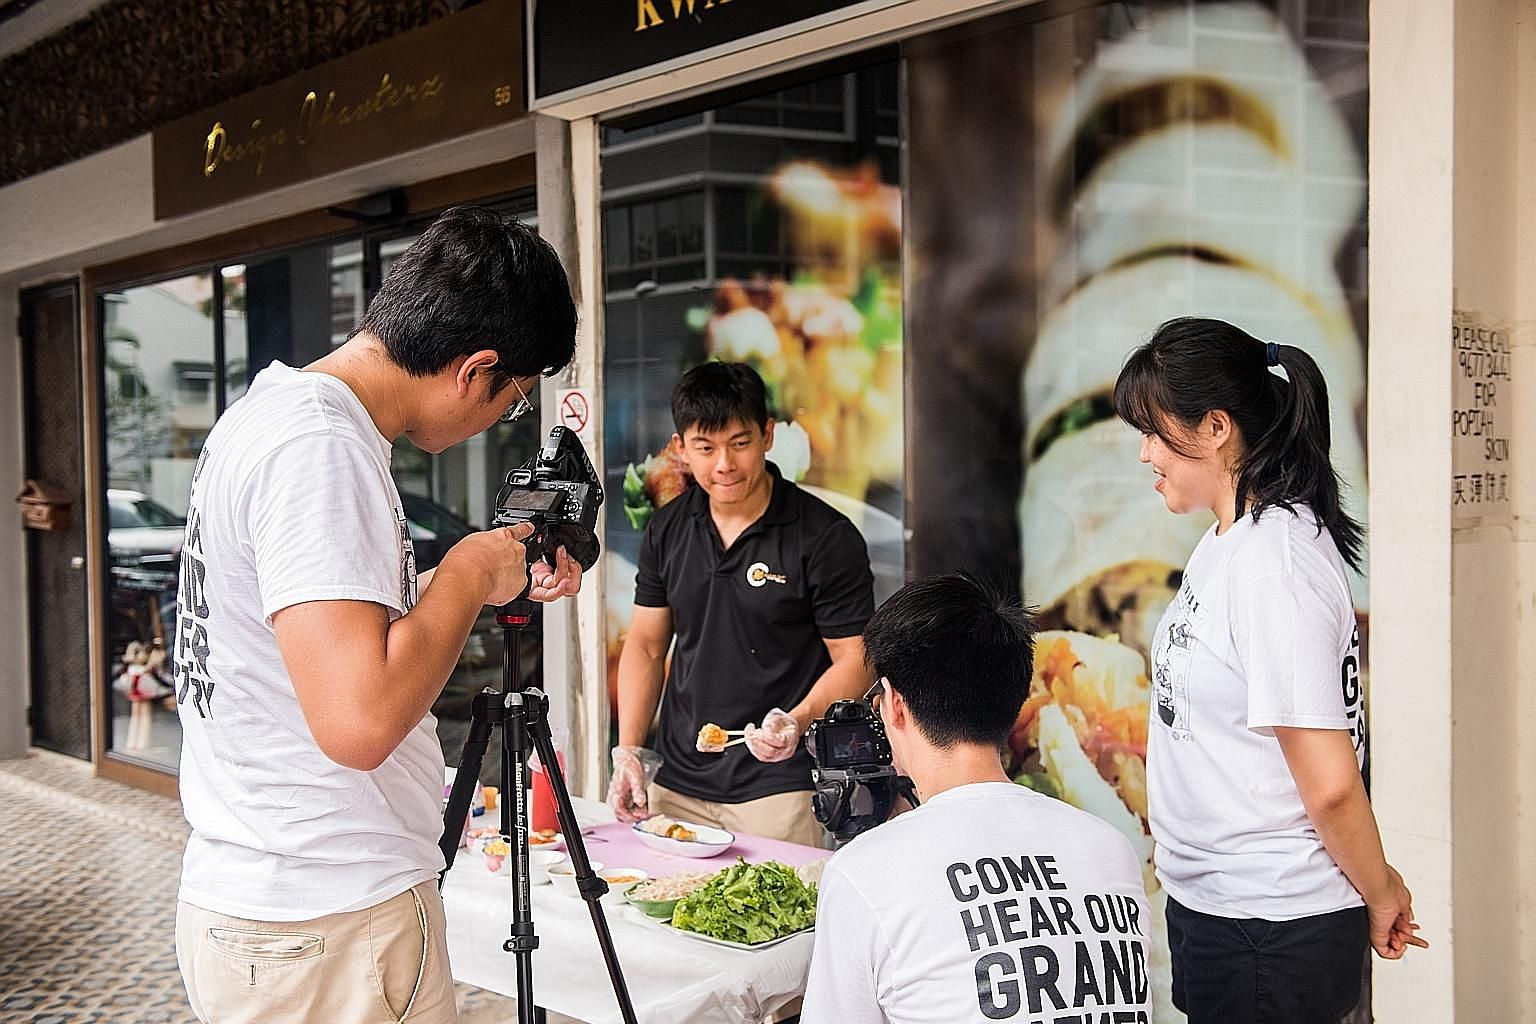 Our Grandfather Story team with (foreground, from left) Mr Ng Kai Yuan, Mr Matthew Chew and Ms Carine Tan, filming a clip. Their first video, which featured pink and green ice-cream bread from Jackson Bakery & Confectionery in Bedok, had over 150,000